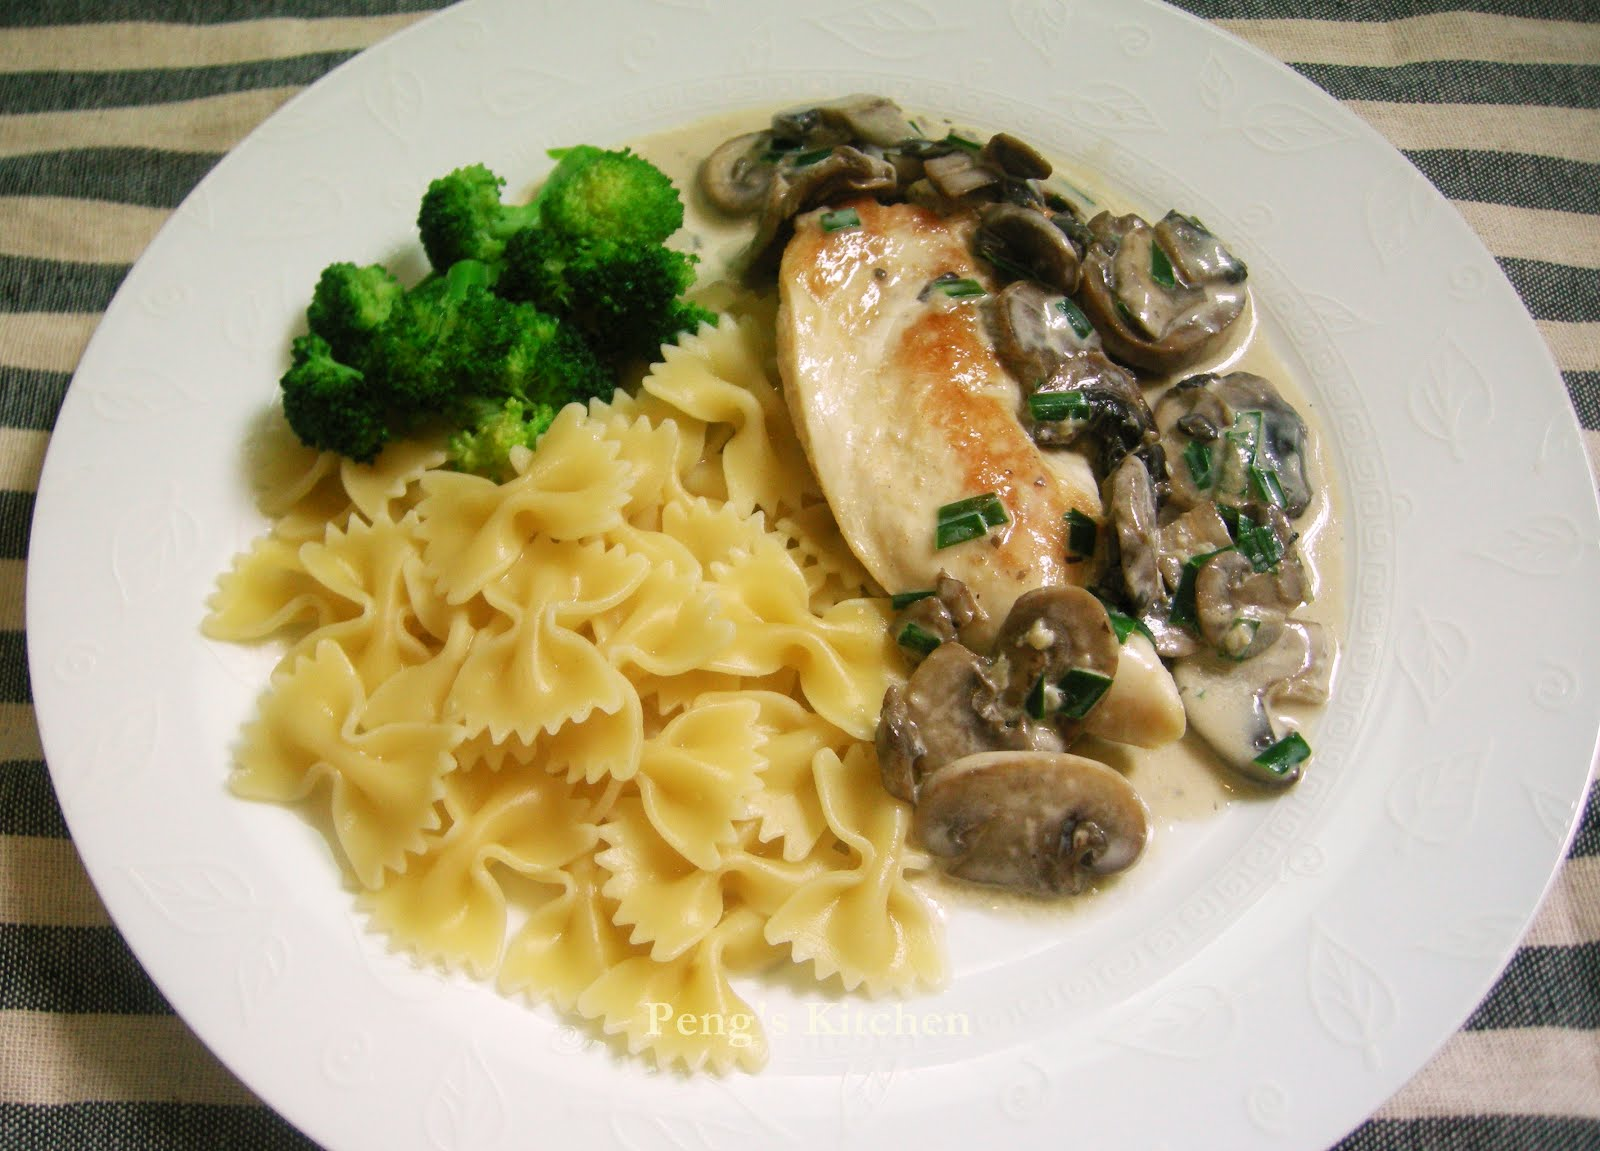 Peng's Kitchen: Farfalle with Panfried Chicken & Creamy Mushroom Sauce